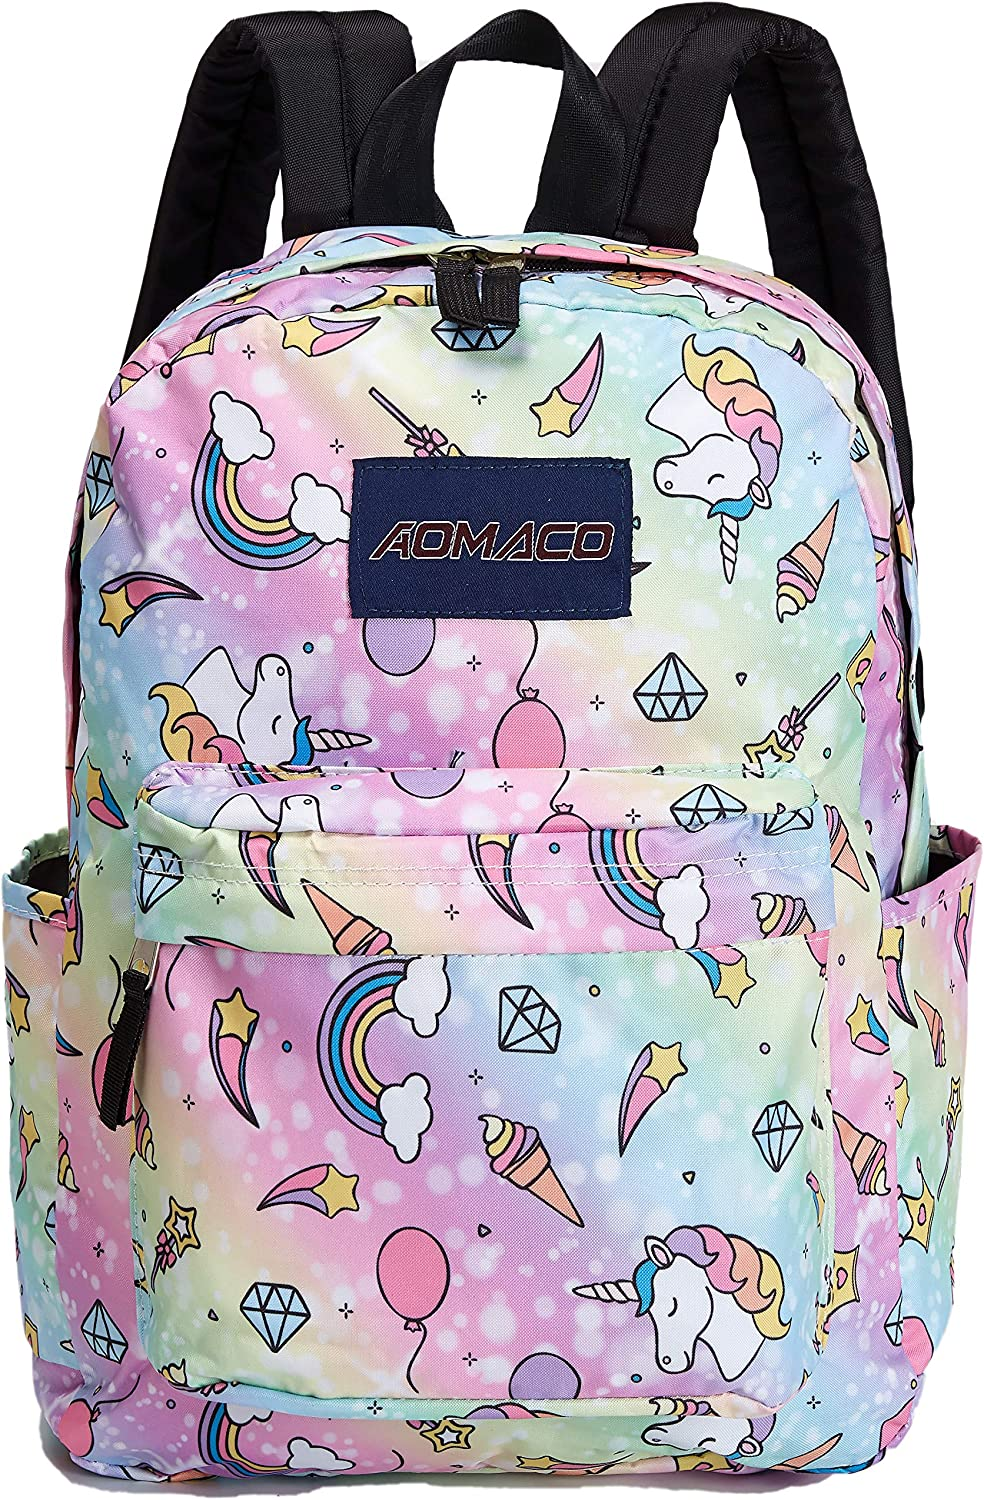 AOMACO School Backpack Kids Unicorn Rainbow Patterned Cute Pupil School Bag for Girls and Boys